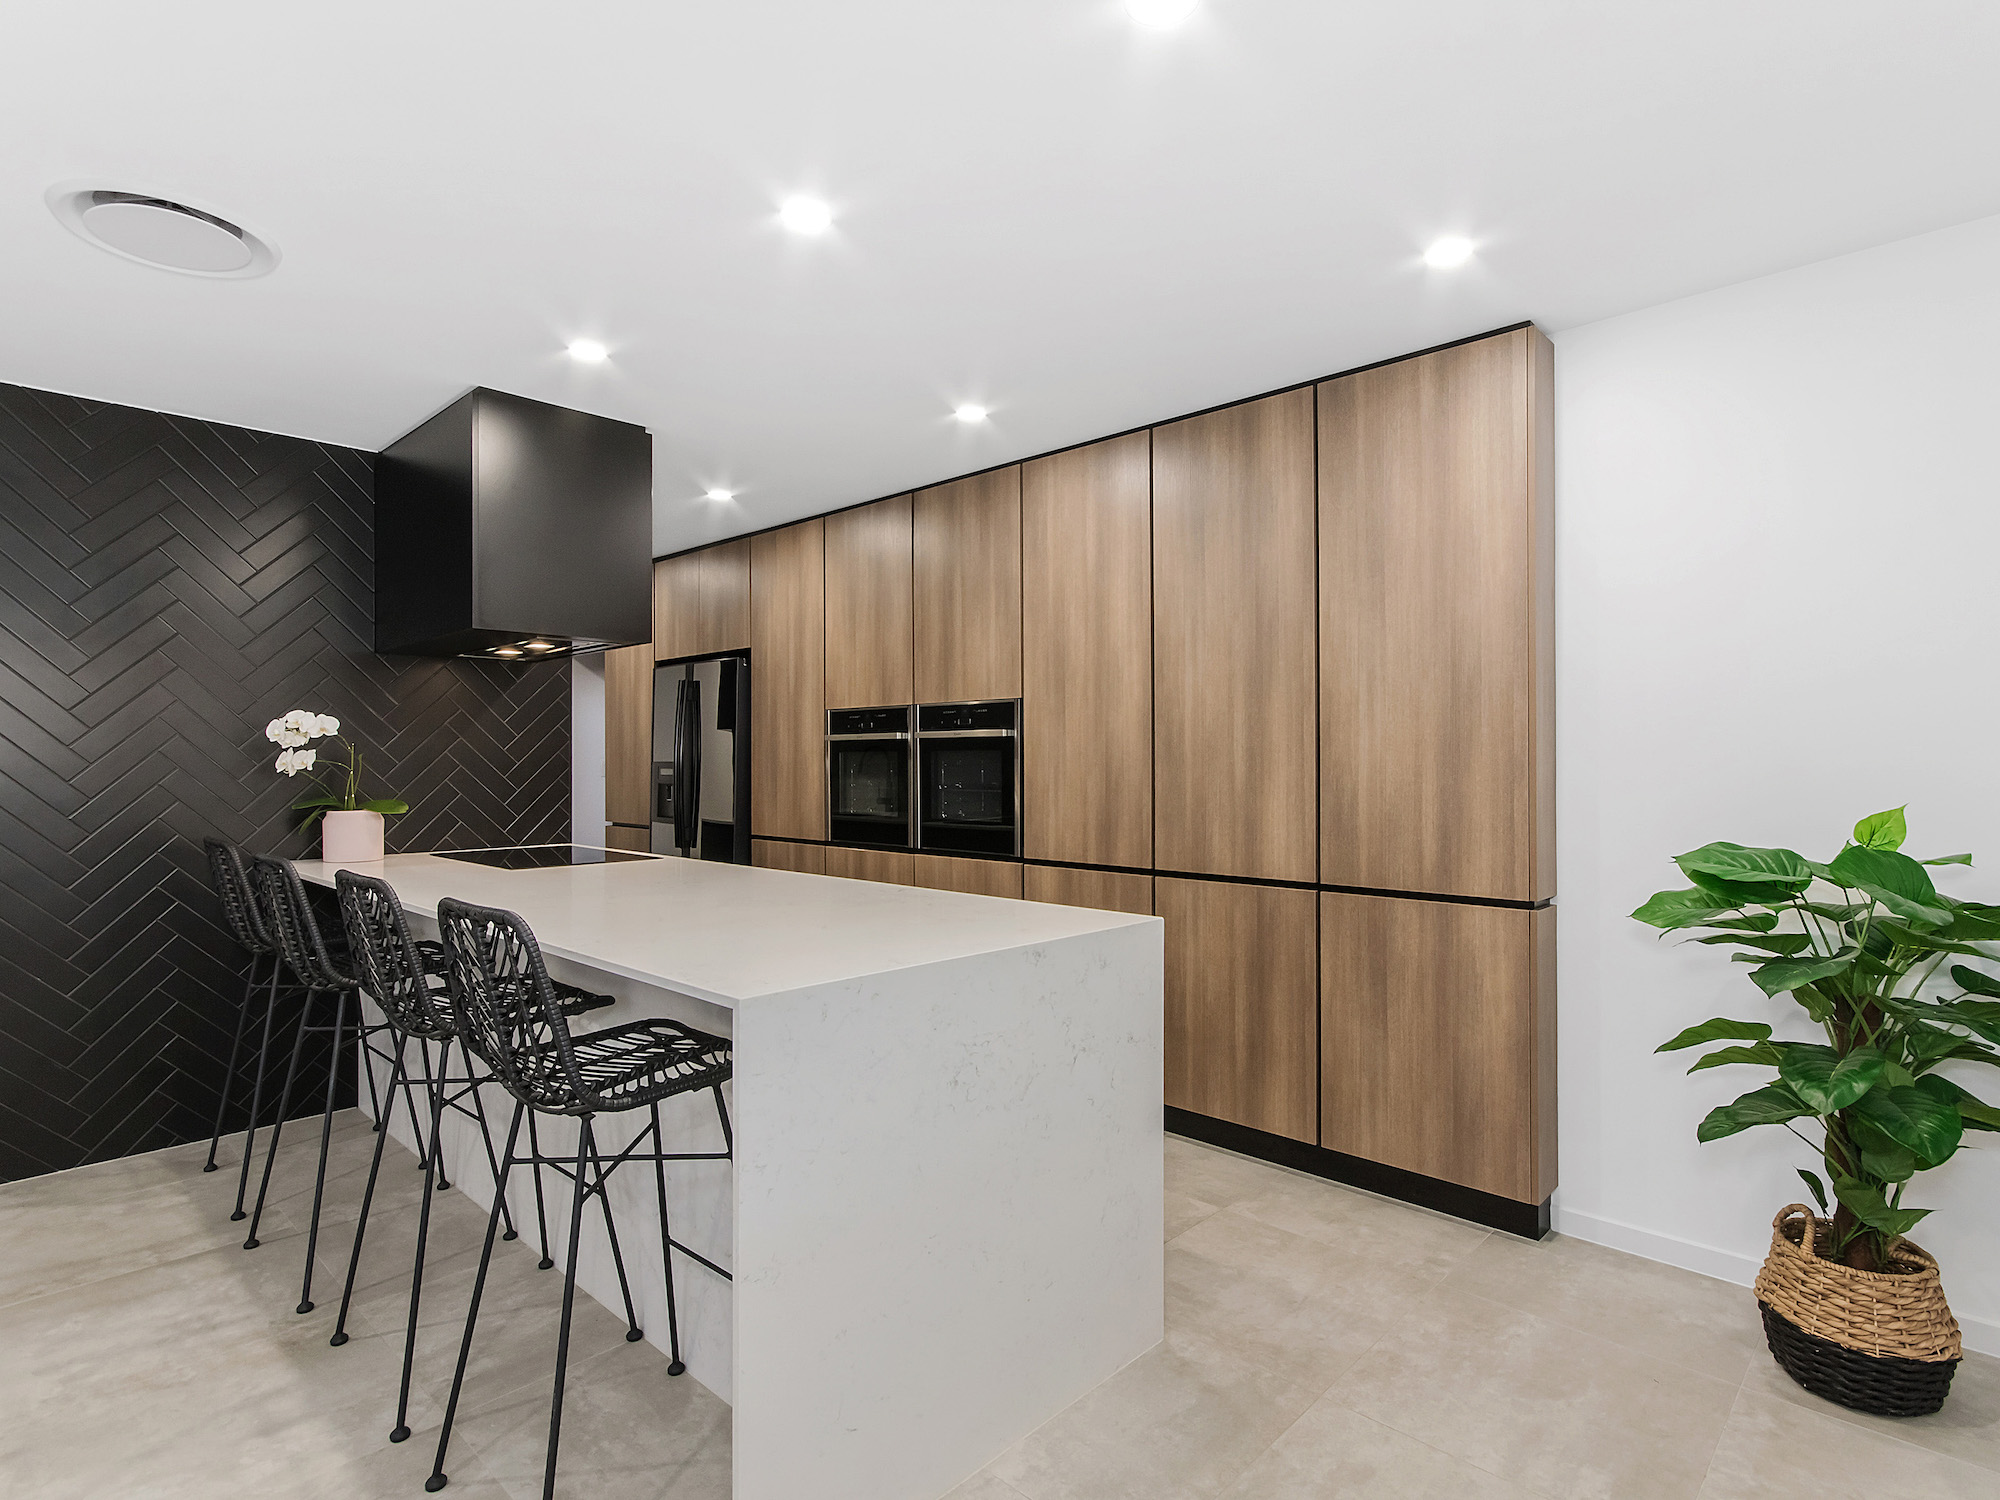 Luxury timber kitchen with concrete floor tiles Gold Coast Building and Renovations